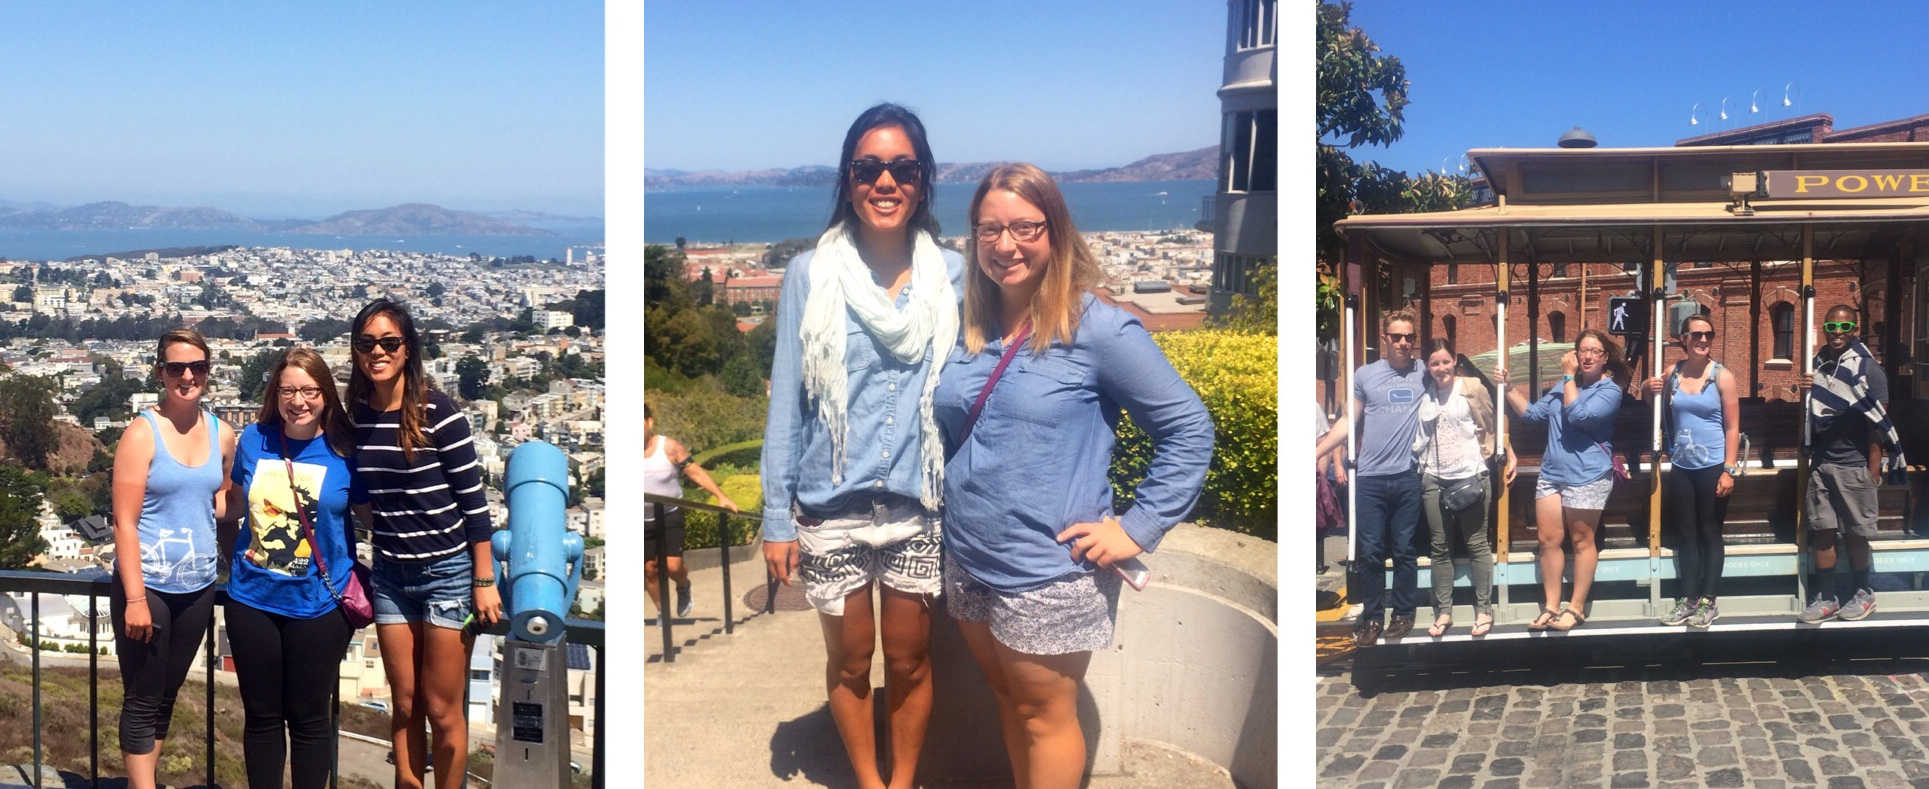 Being tourist-y in San Francisco